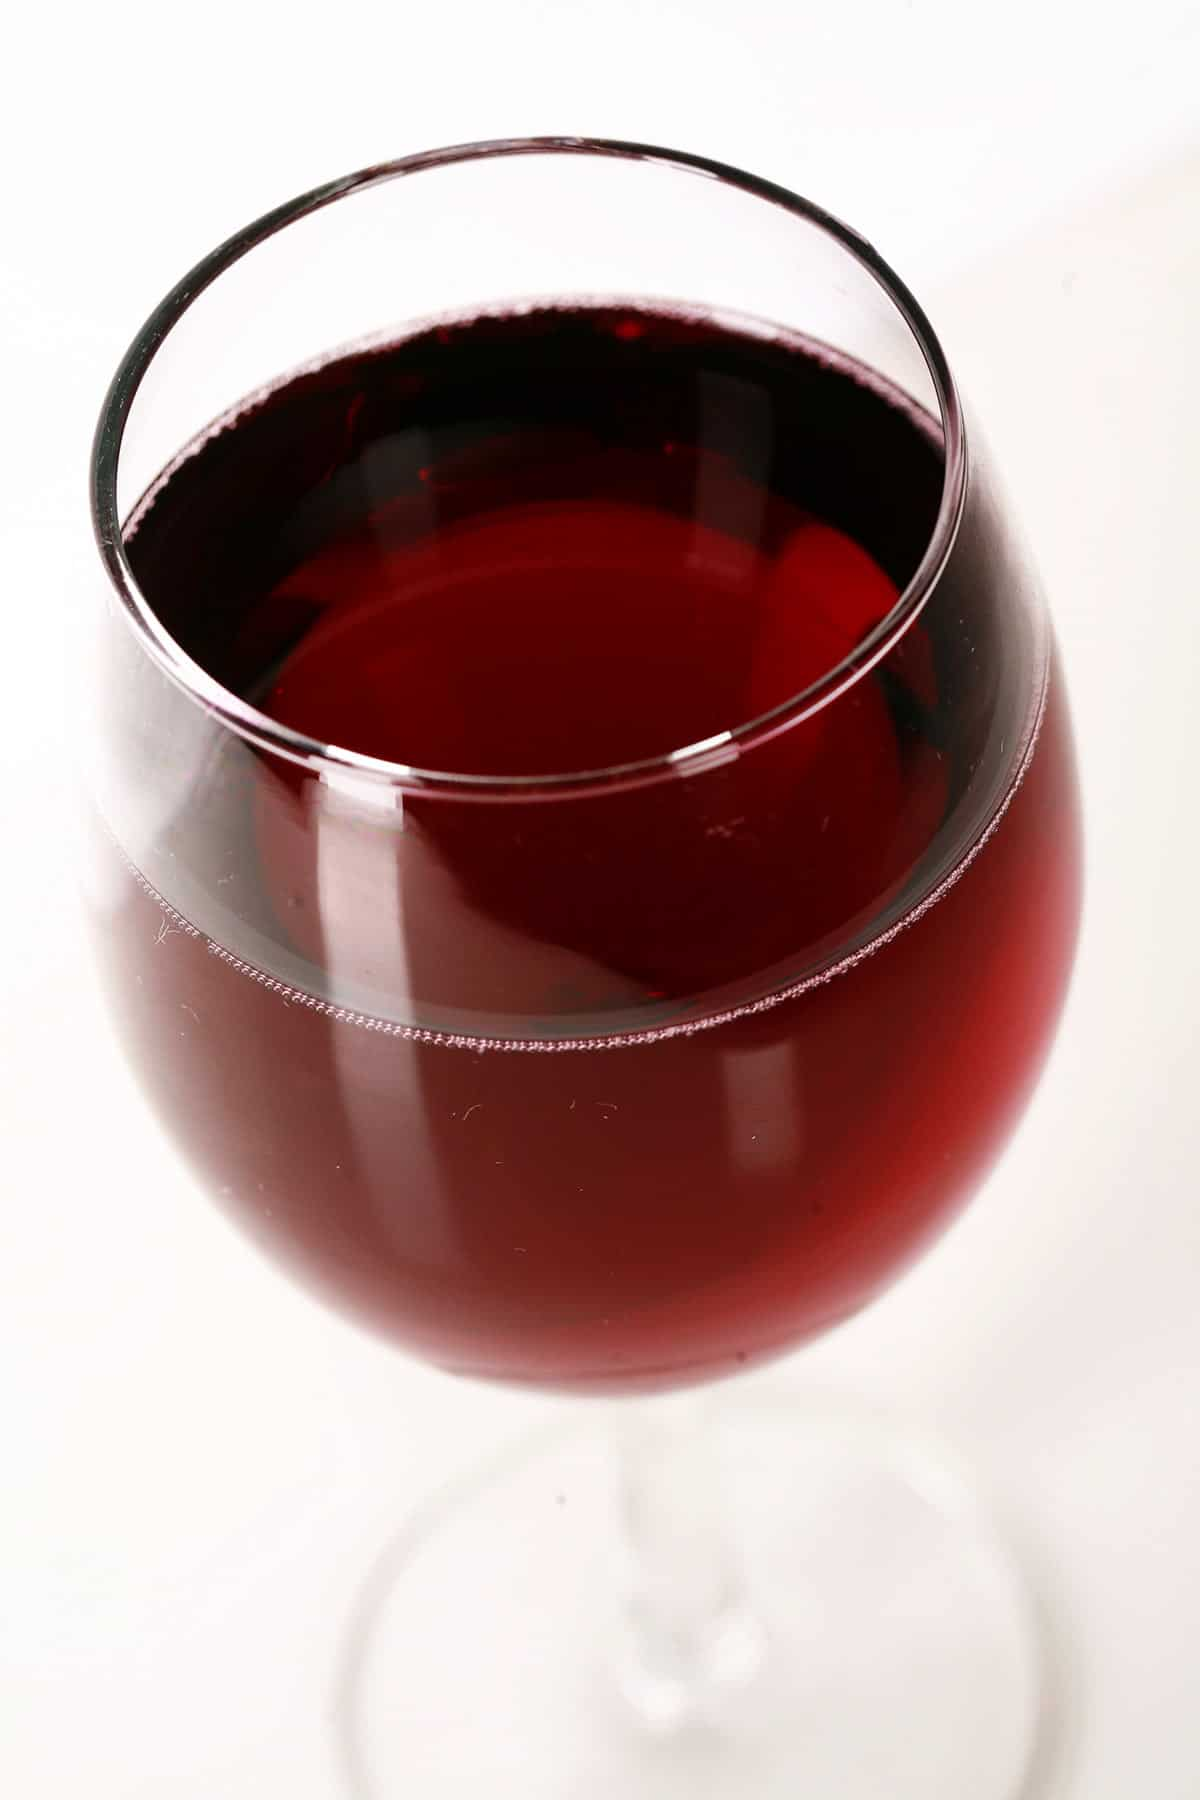 Close up view of a glass of red wine.